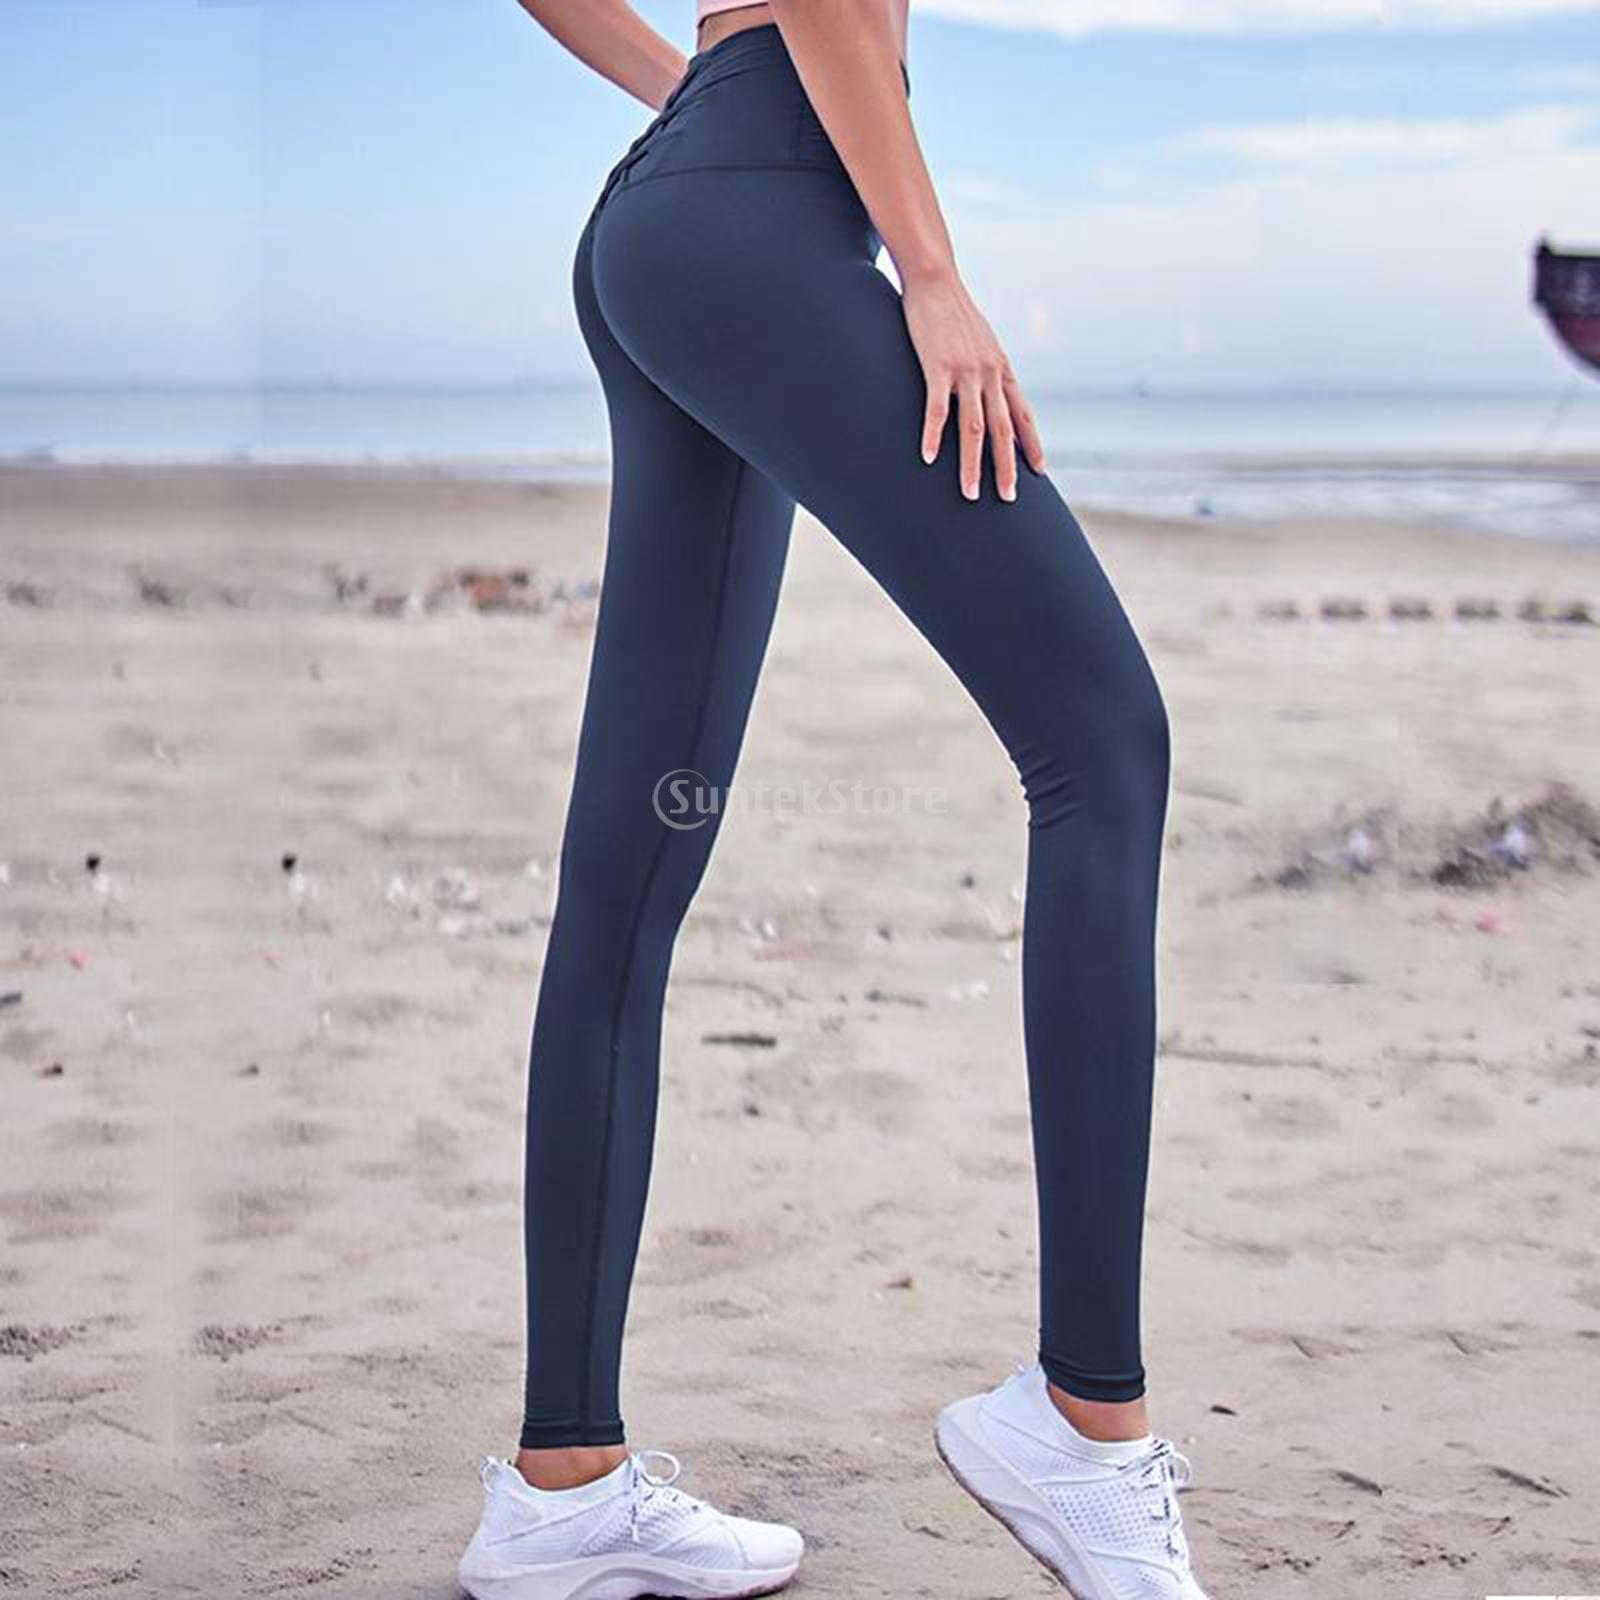 Women's Elastic Yoga Pants High Waist Leggings Slimming Seamless Tummy Control for Running  Jogging Fitness Exercise Workout